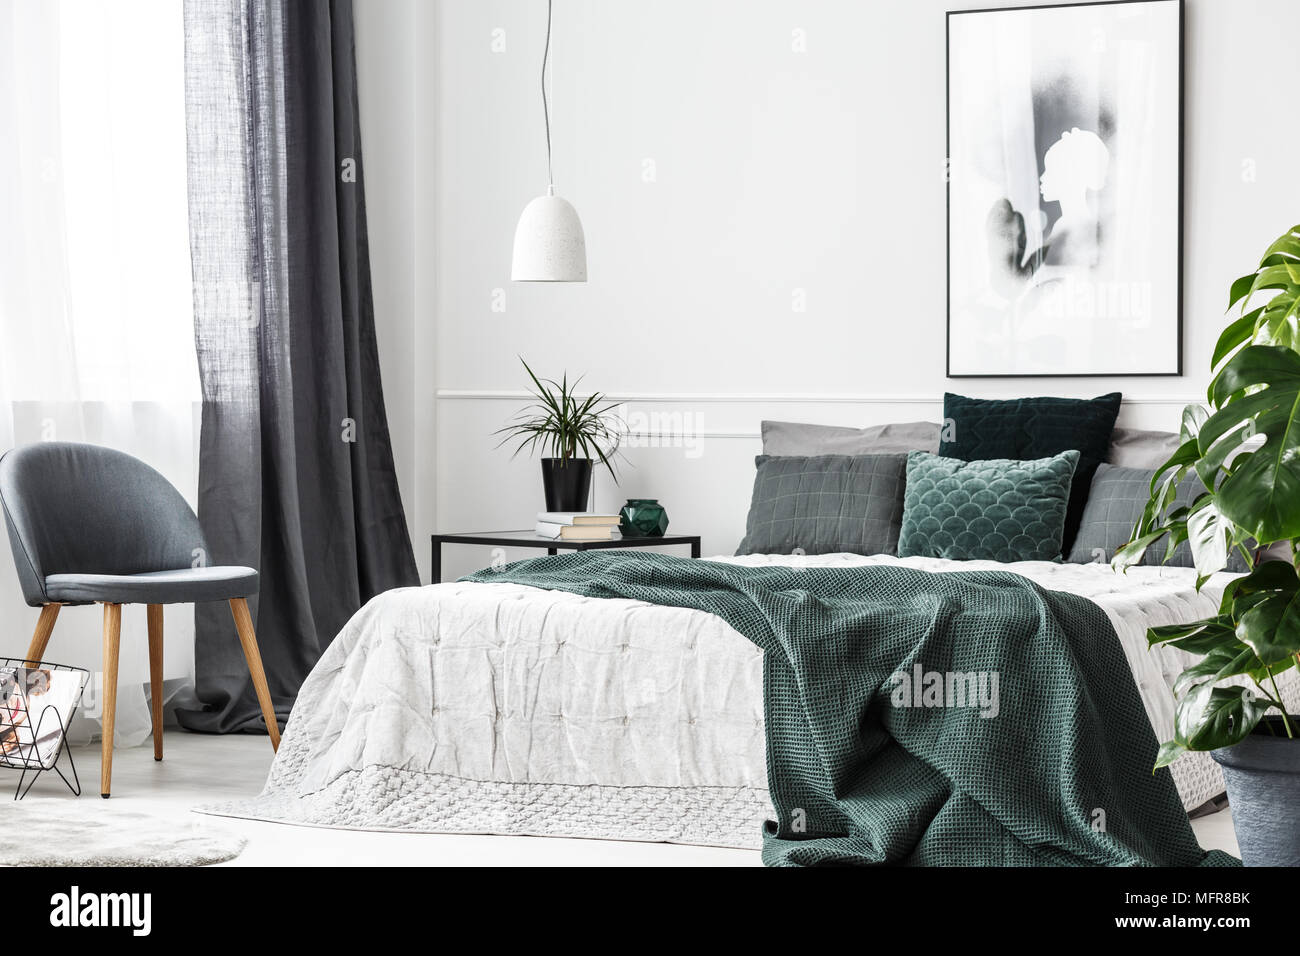 Emerald Green Blanket And Pillows On White Bed In Cozy Bedroom Interior With Gray Chair And Poster Stock Photo Alamy